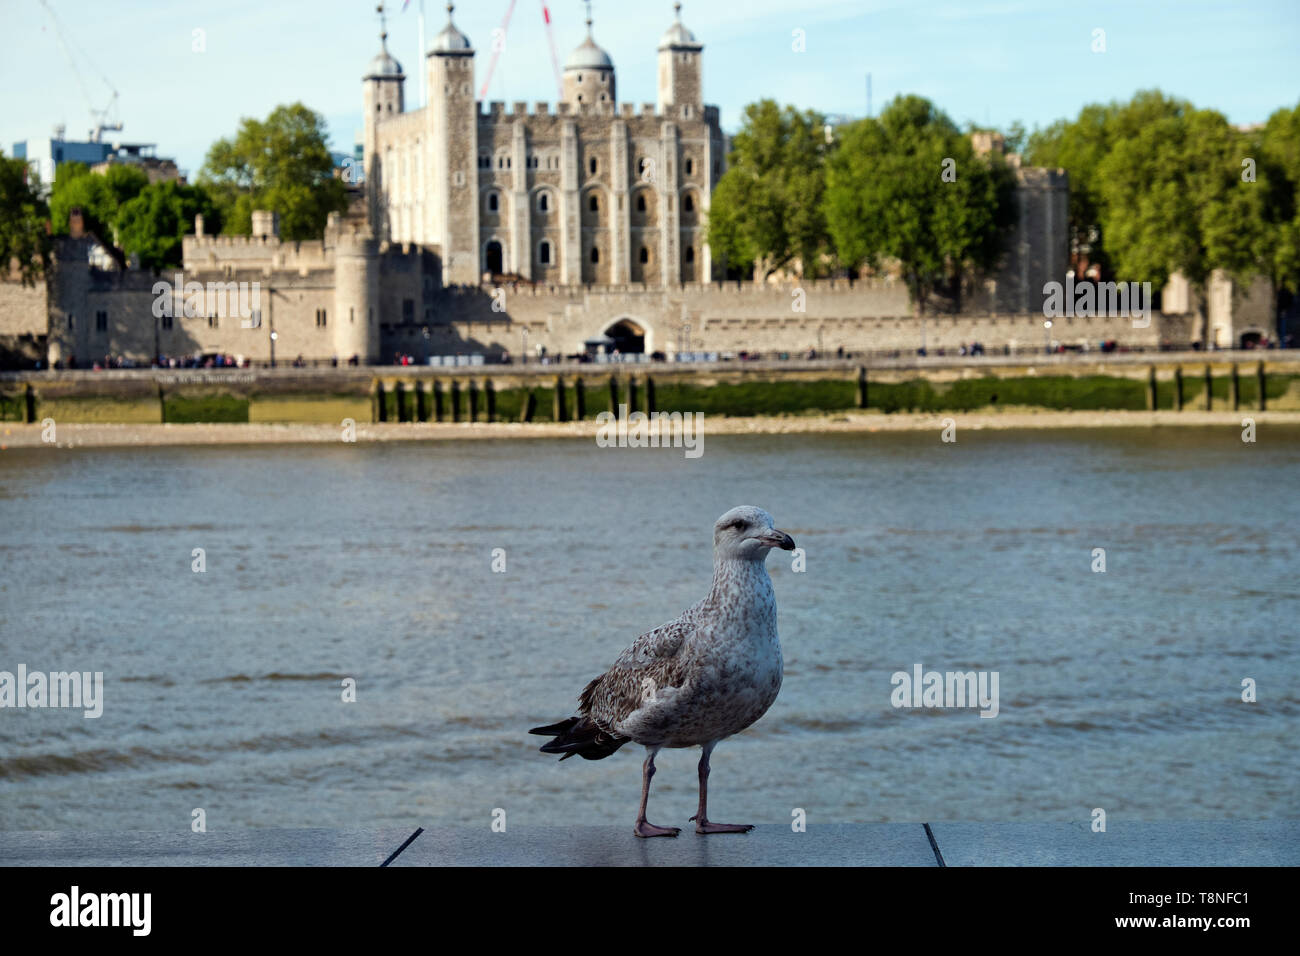 Gull waiting for titbits on a wall on the River Thames in front of the Tower of  London England - Stock Image